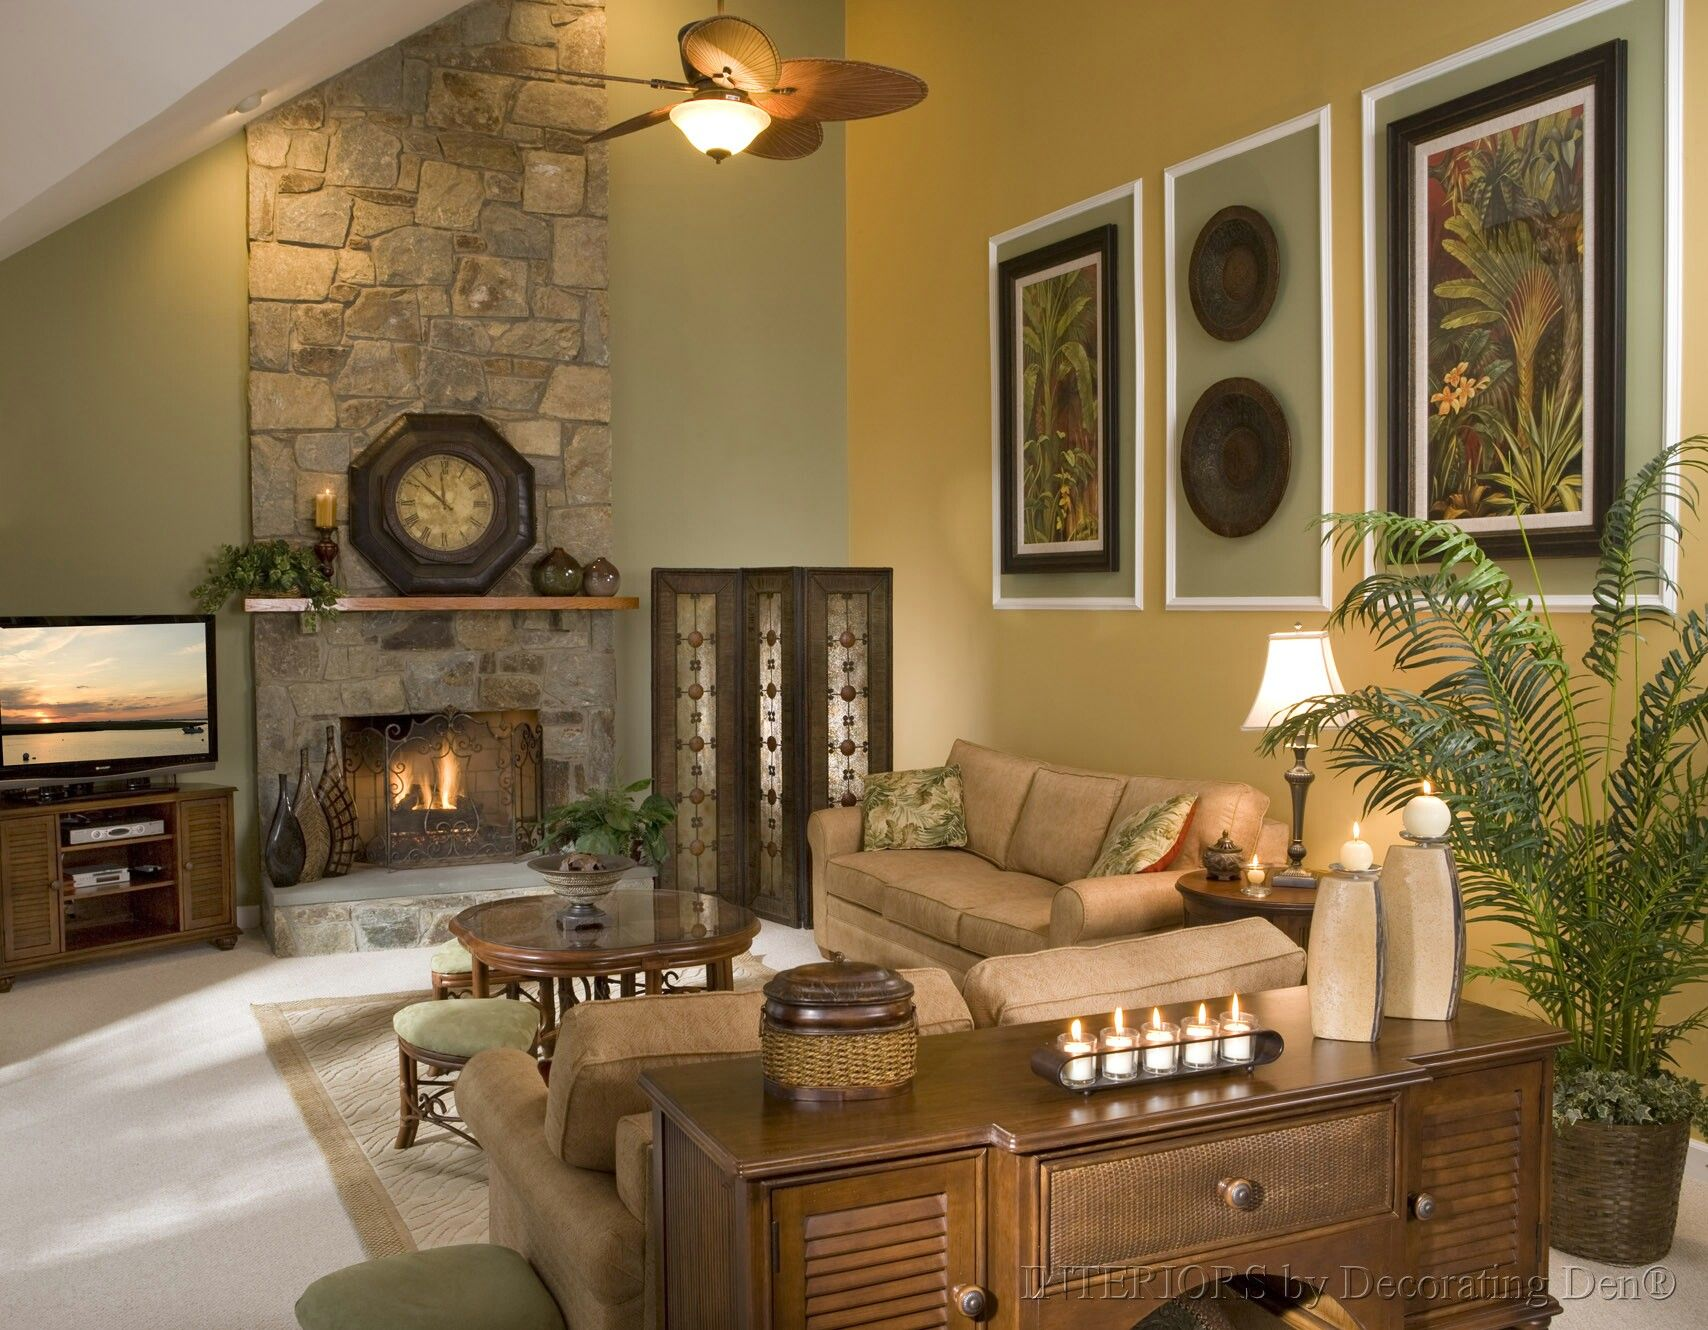 Tips And Tricks For Decorating With Tall And Low Ceilings High Ceiling Living Room Vaulted Ceiling Living Room Wall Decor Living Room